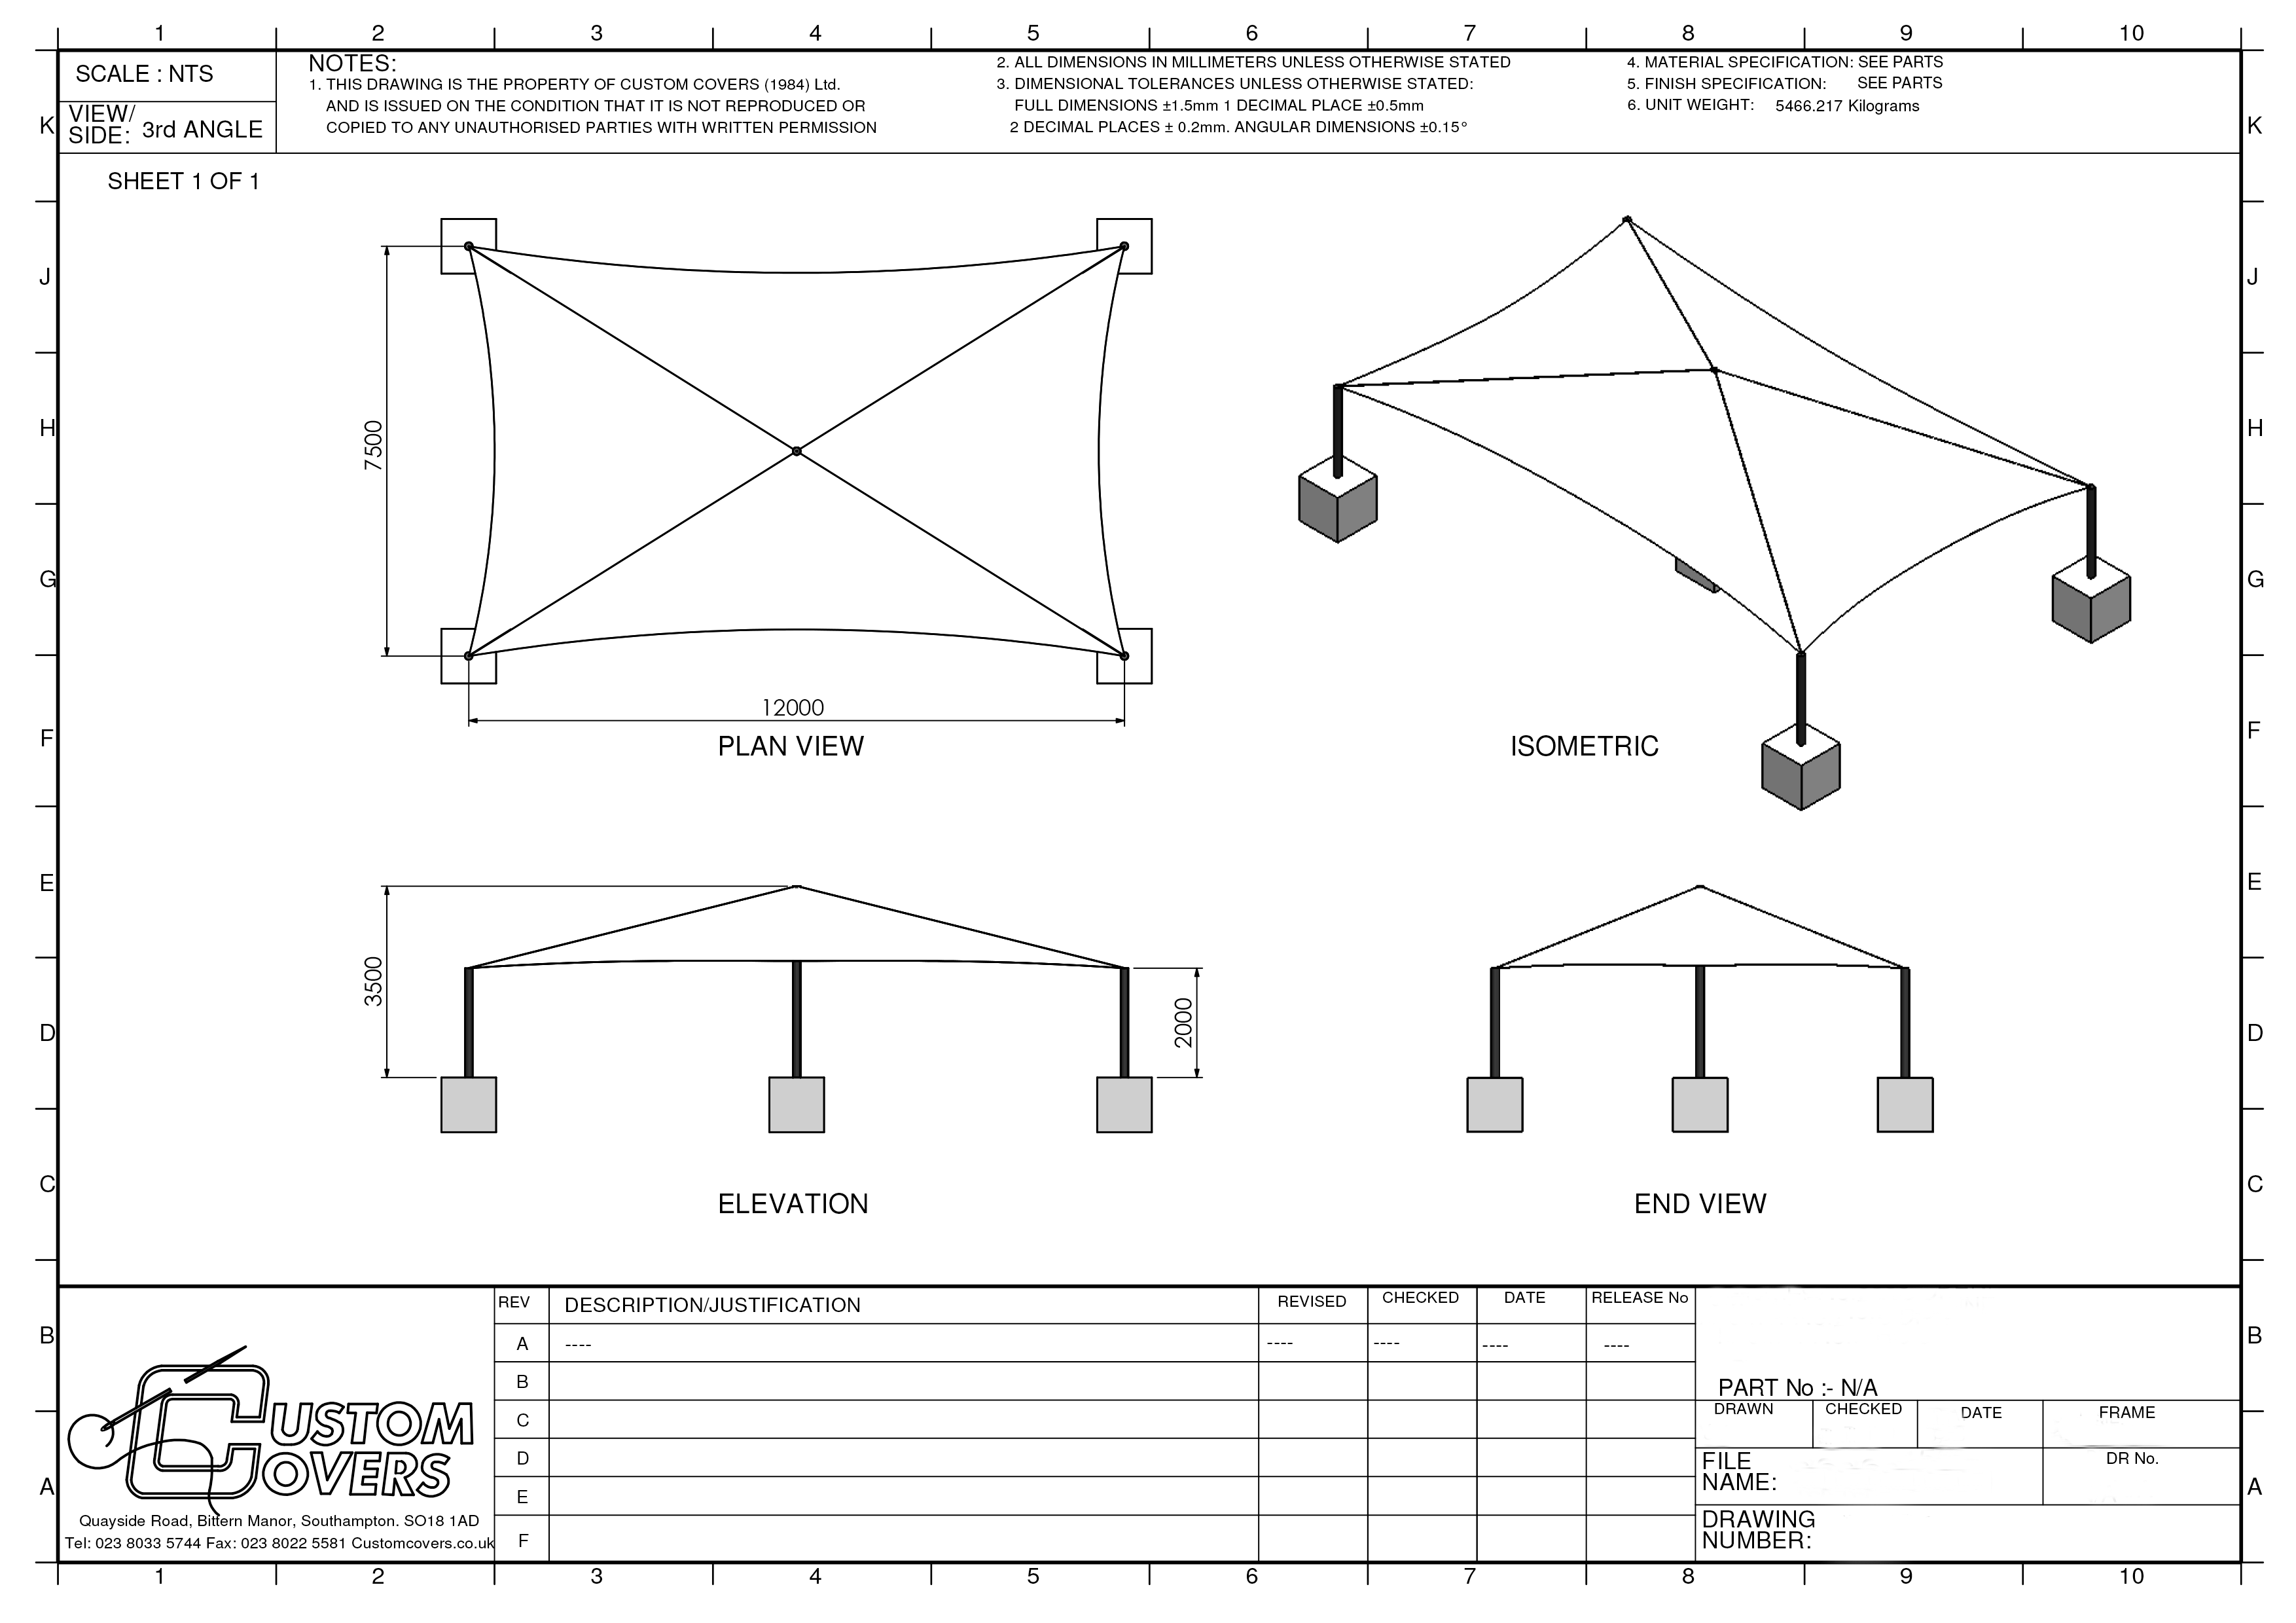 DWG15232 - Sheet 1  sc 1 st  Custom Covers & Tensile Structures - Custom Covers